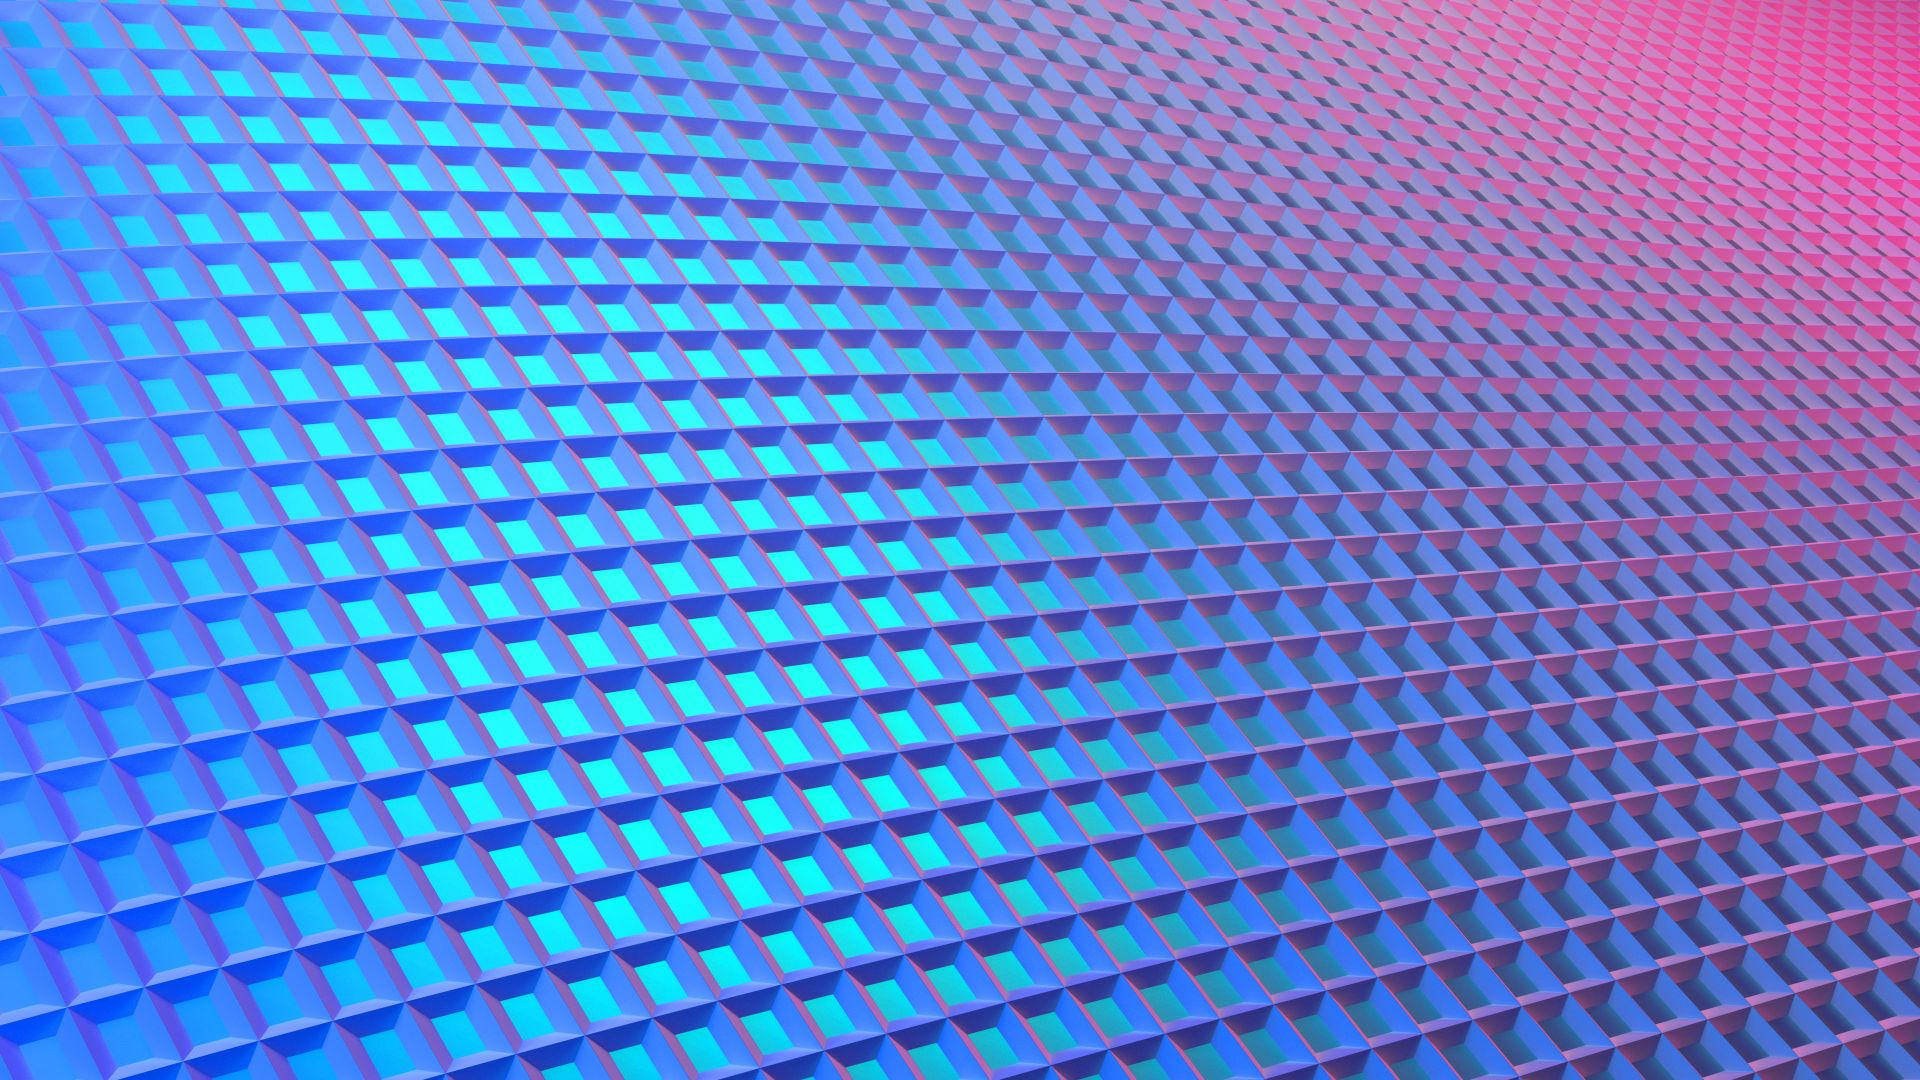 iPhone обои, андроид обои, 4k, 5k, сетка, абстракт, голубой, iphone wallpaper, android wallpaper, 4k, 5k, grids, abstract, blue (horizontal)